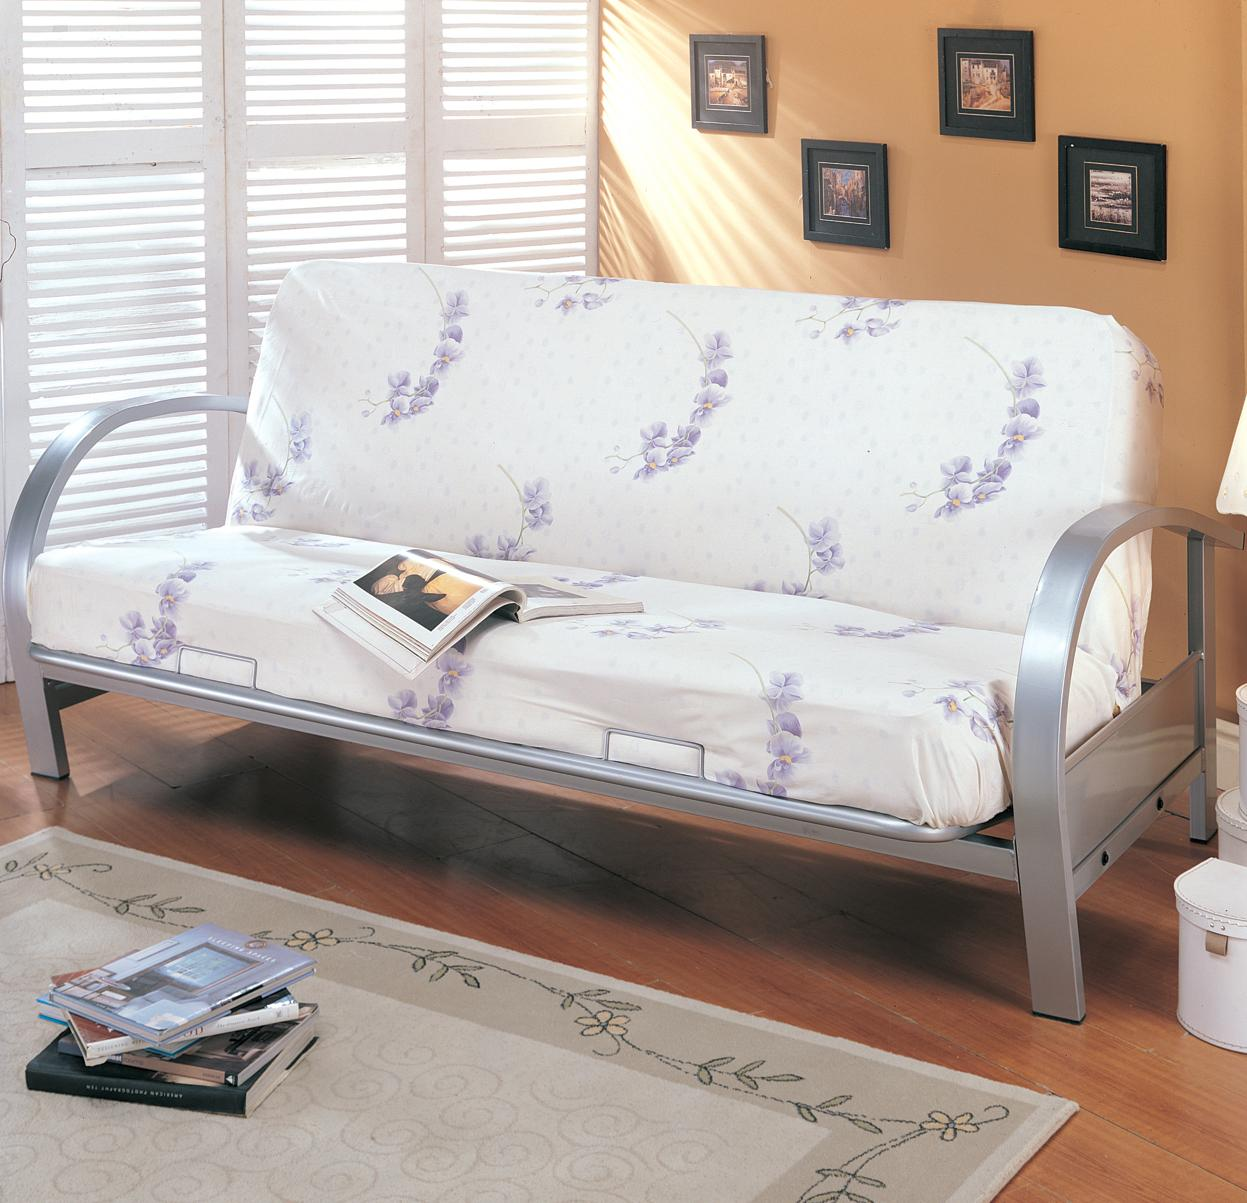 Futon Factory Futons Contemporary Metal Futon Frame By Coaster At Northeast Factory Direct